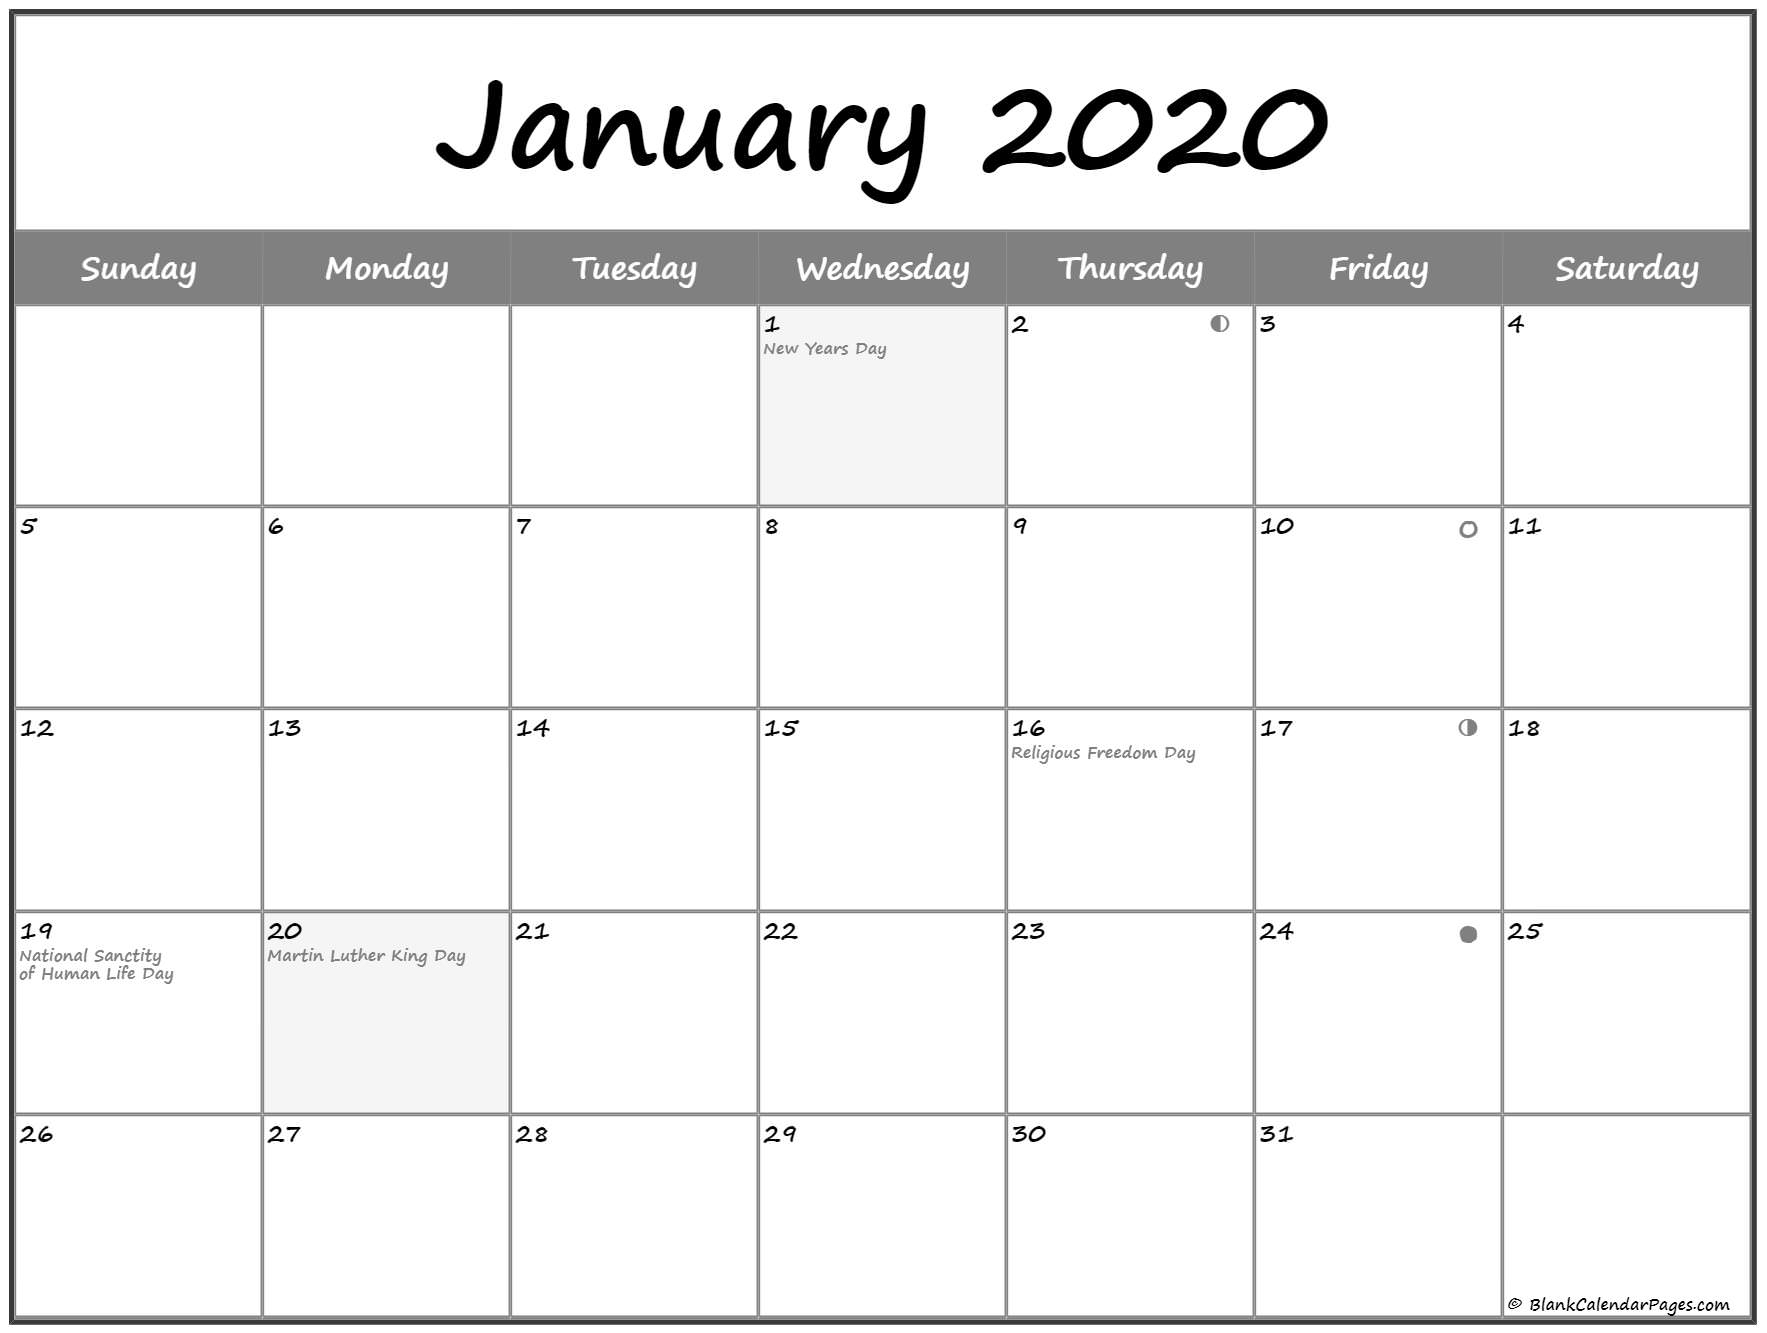 January 2020 Lunar Calendar | Moon Phase Calendar 2020